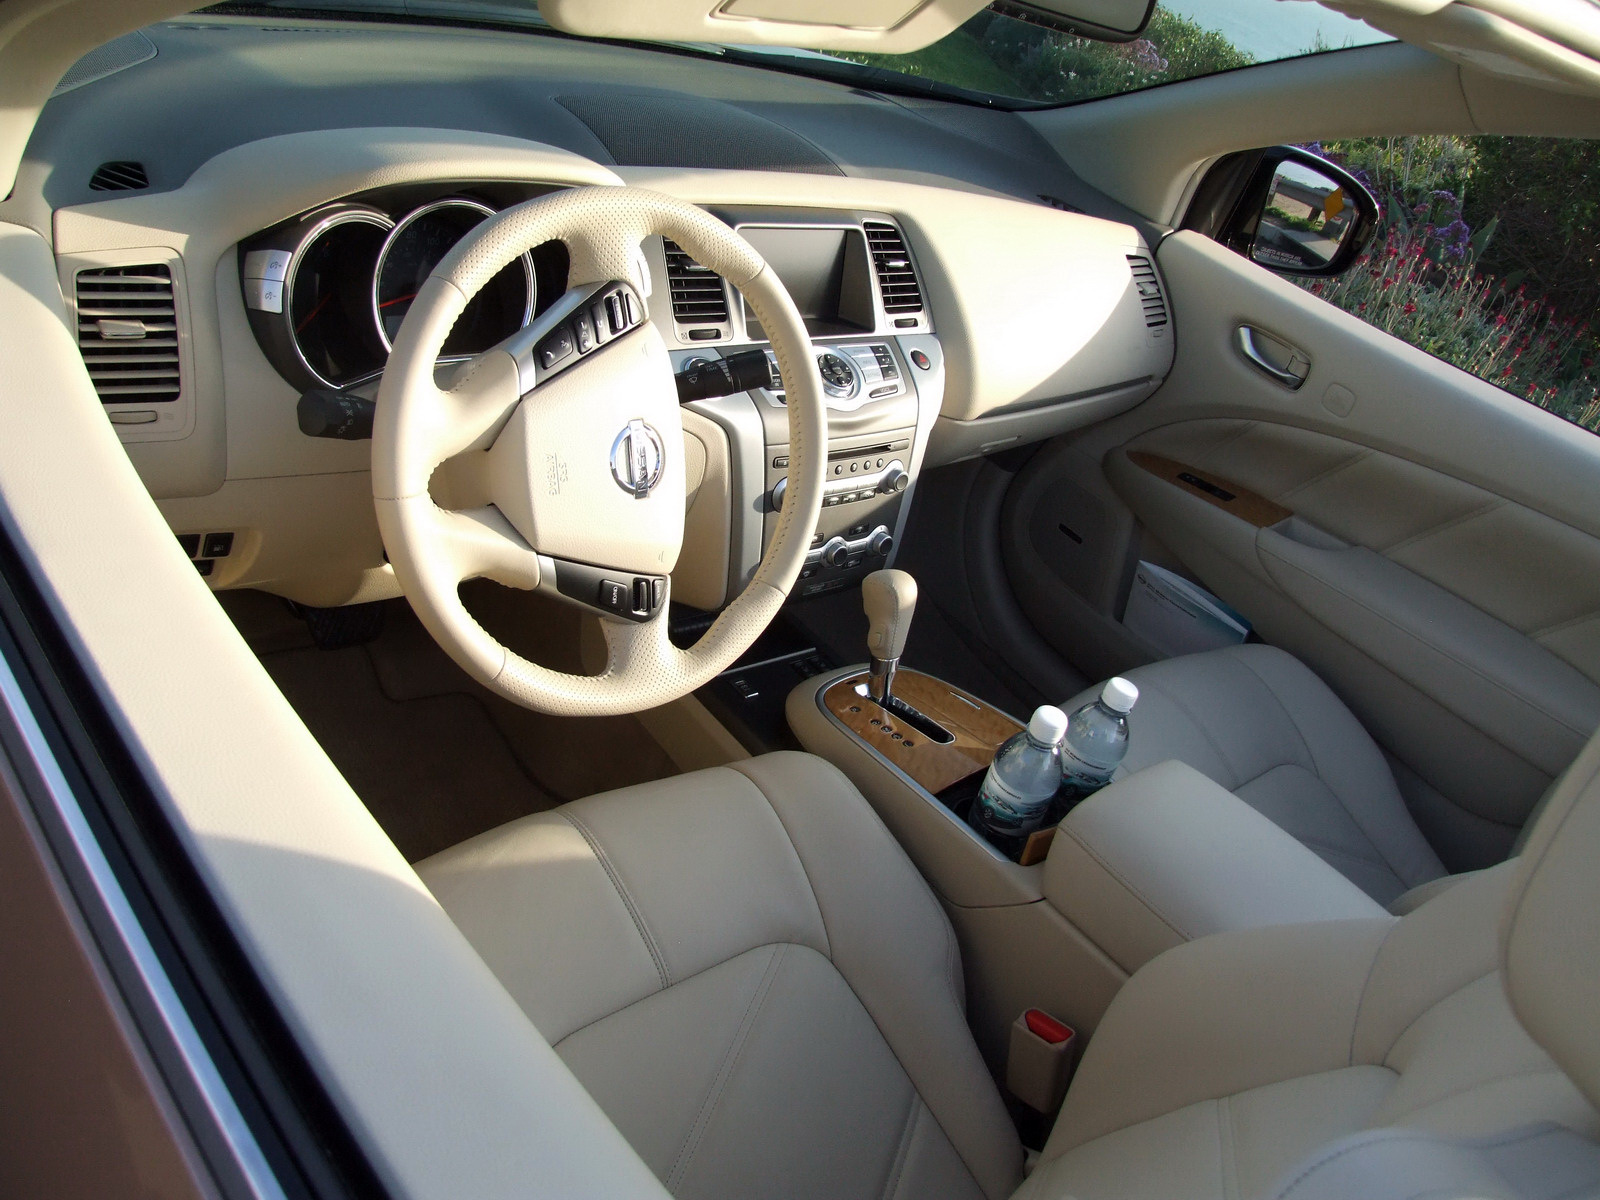 2010 - [Nissan] Murano CrossCabriolet - Page 4 2011-Nissan-Murano-CC-TD-595